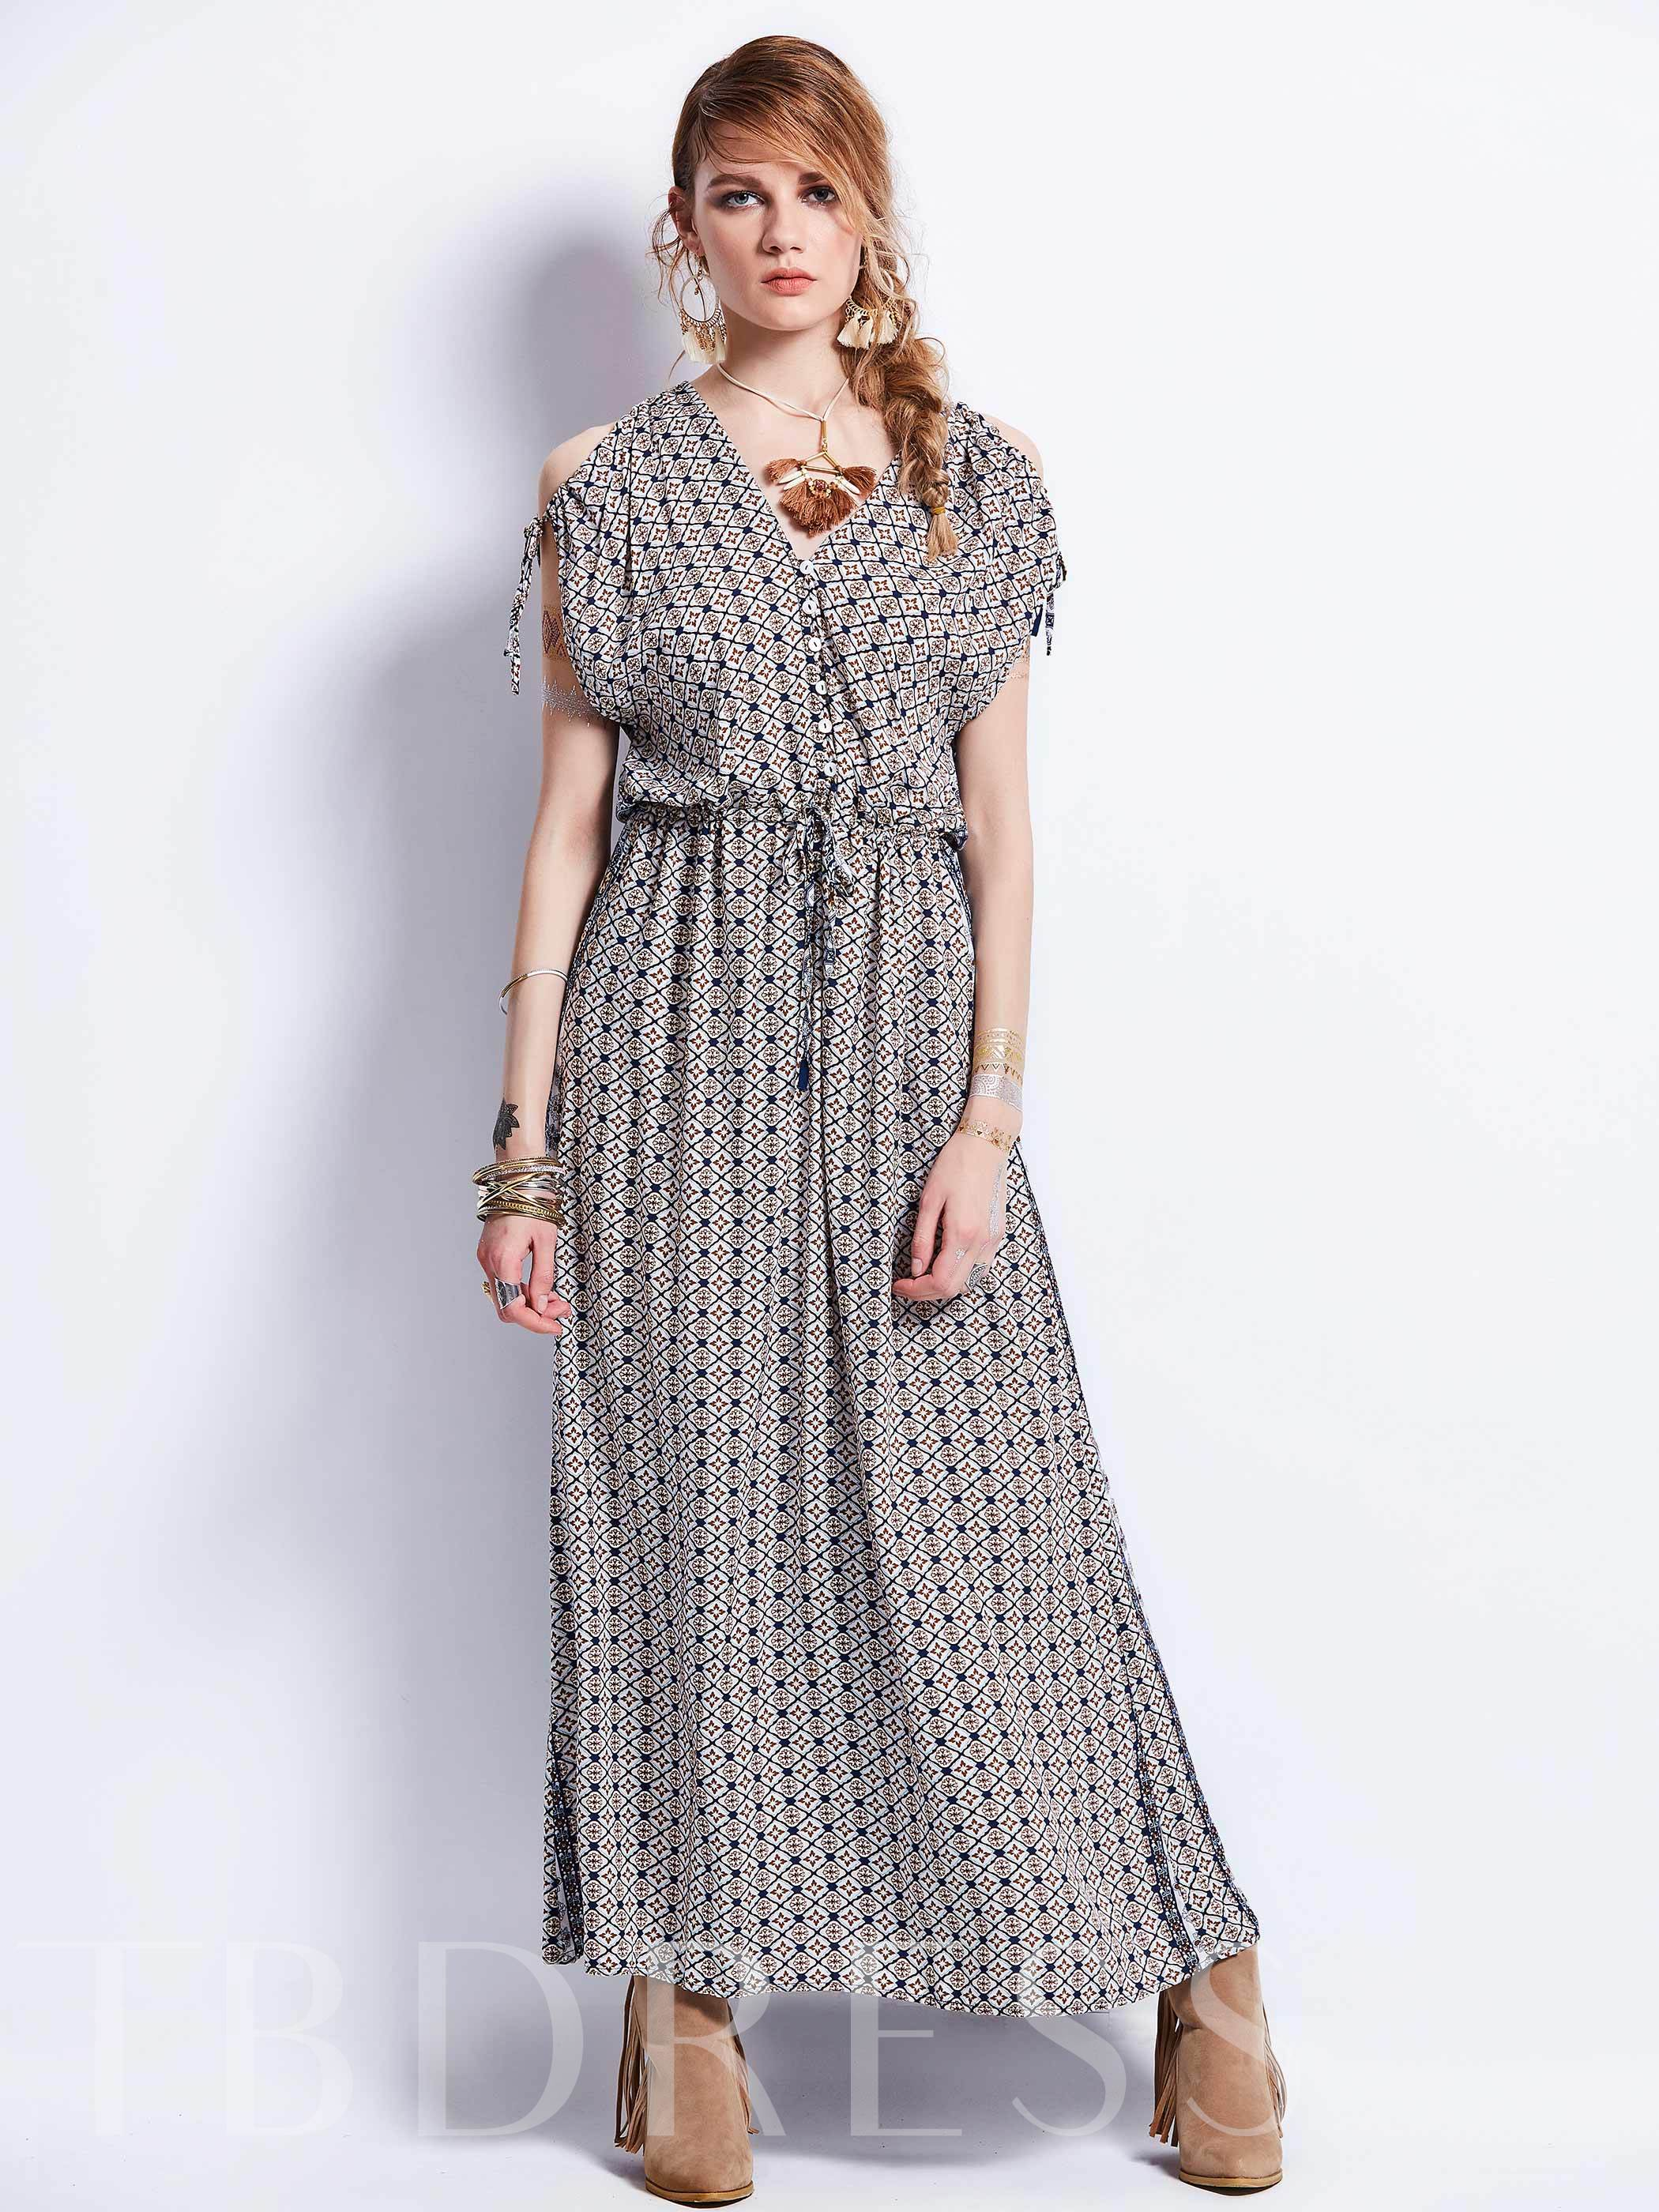 Buy Coffee Cold Shoulder Women's Maxi Dress, 12805084 for $14.99 in TBDress store